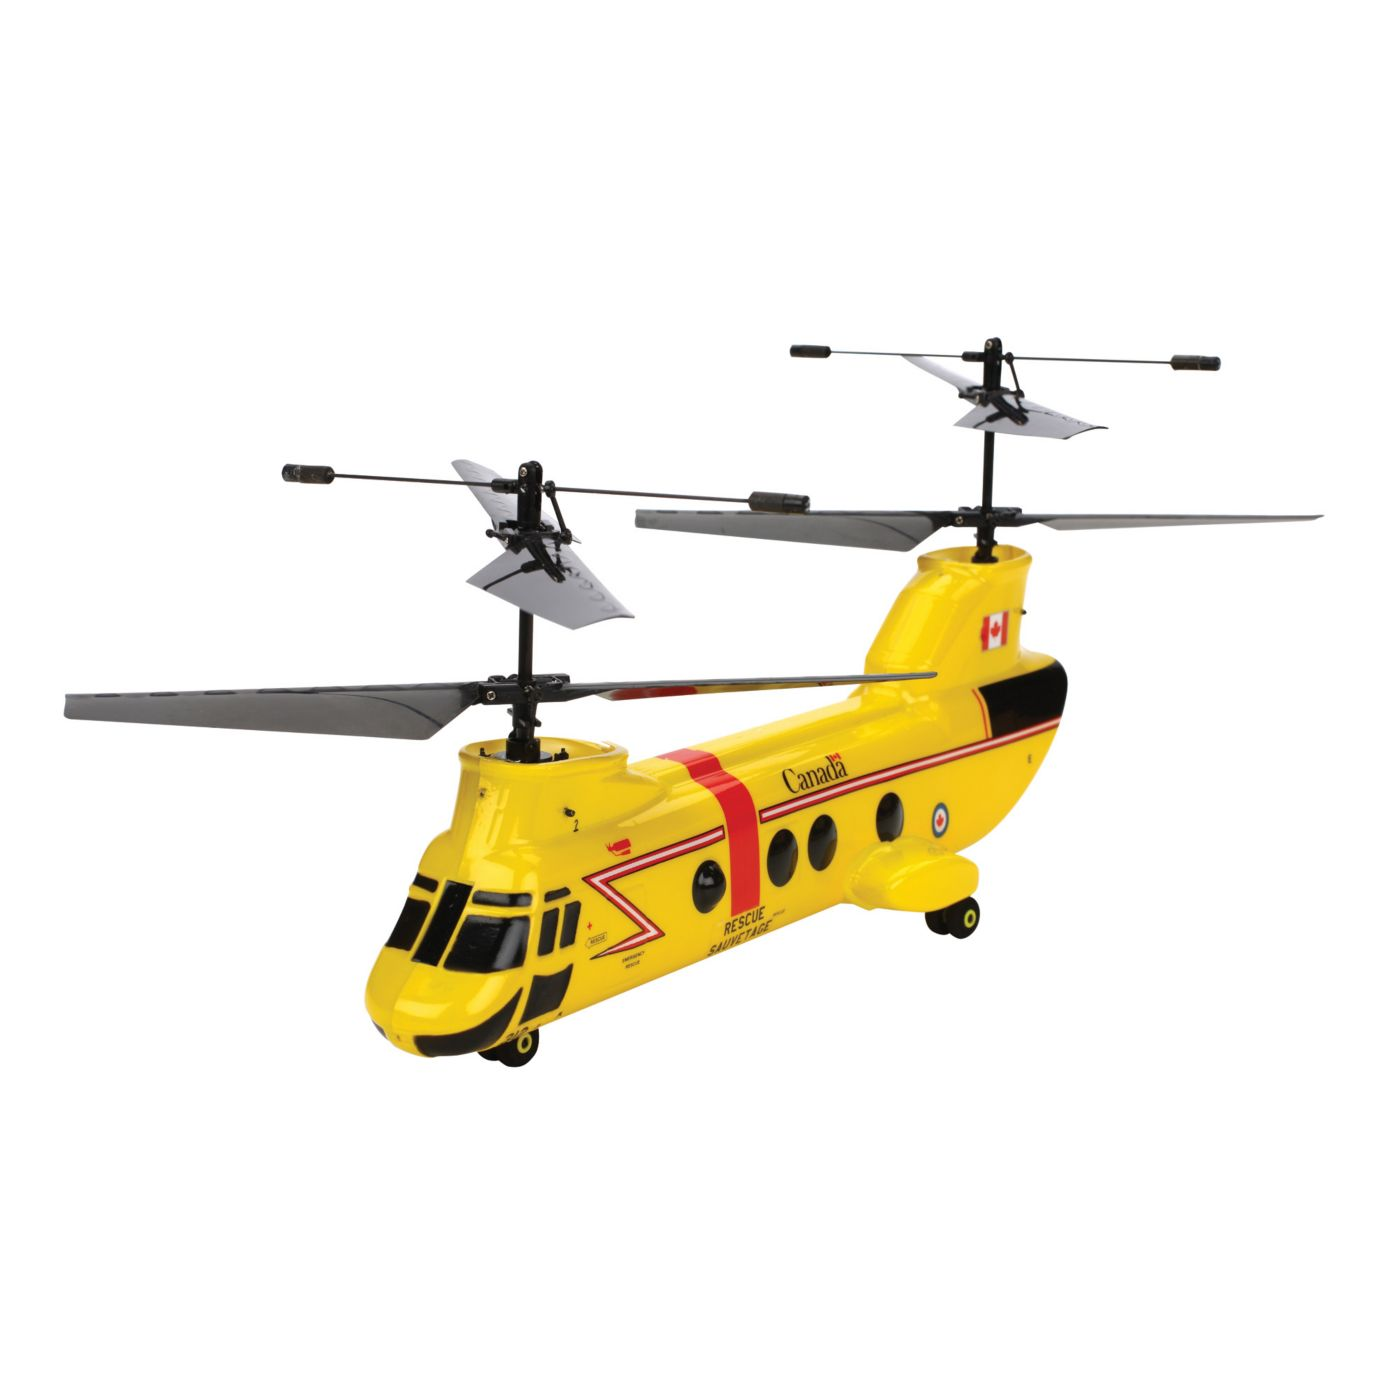 Image for Blade mCX Tandem Rescue BNF from HorizonHobby  sc 1 st  Horizon Hobby & Blade mCX Tandem Rescue BNF | HorizonHobby